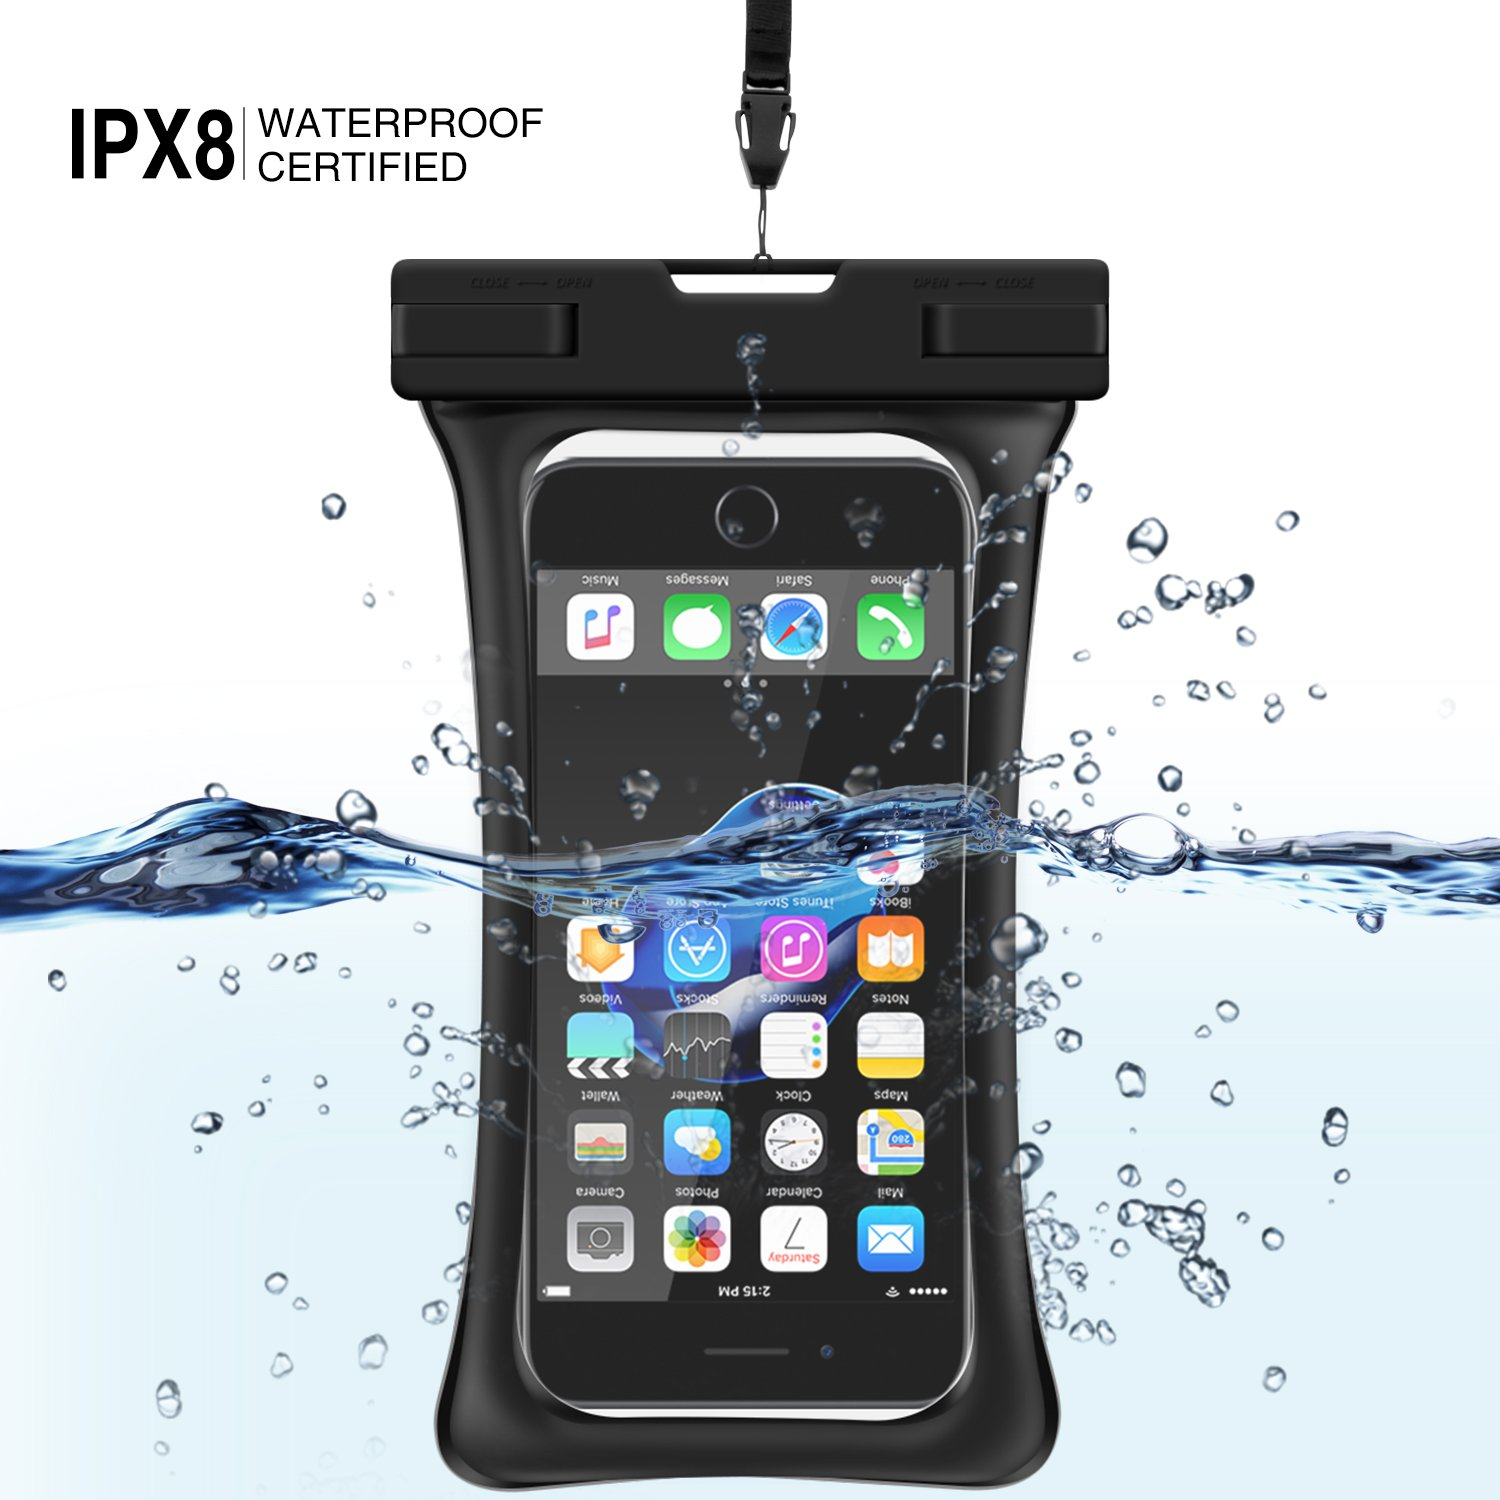 [Floating] Waterproof Phone Pouch, RANVOO Dry Bag Case for iPhone X 8 8 Plus 7 7 plus 6 6s 6 Plus, Samsung Galaxy S9 Plus S8 Edge Note 7, LG G5 G6,with Armband and Lanyard, Up to 6.2''- Black by RANVOO (Image #2)